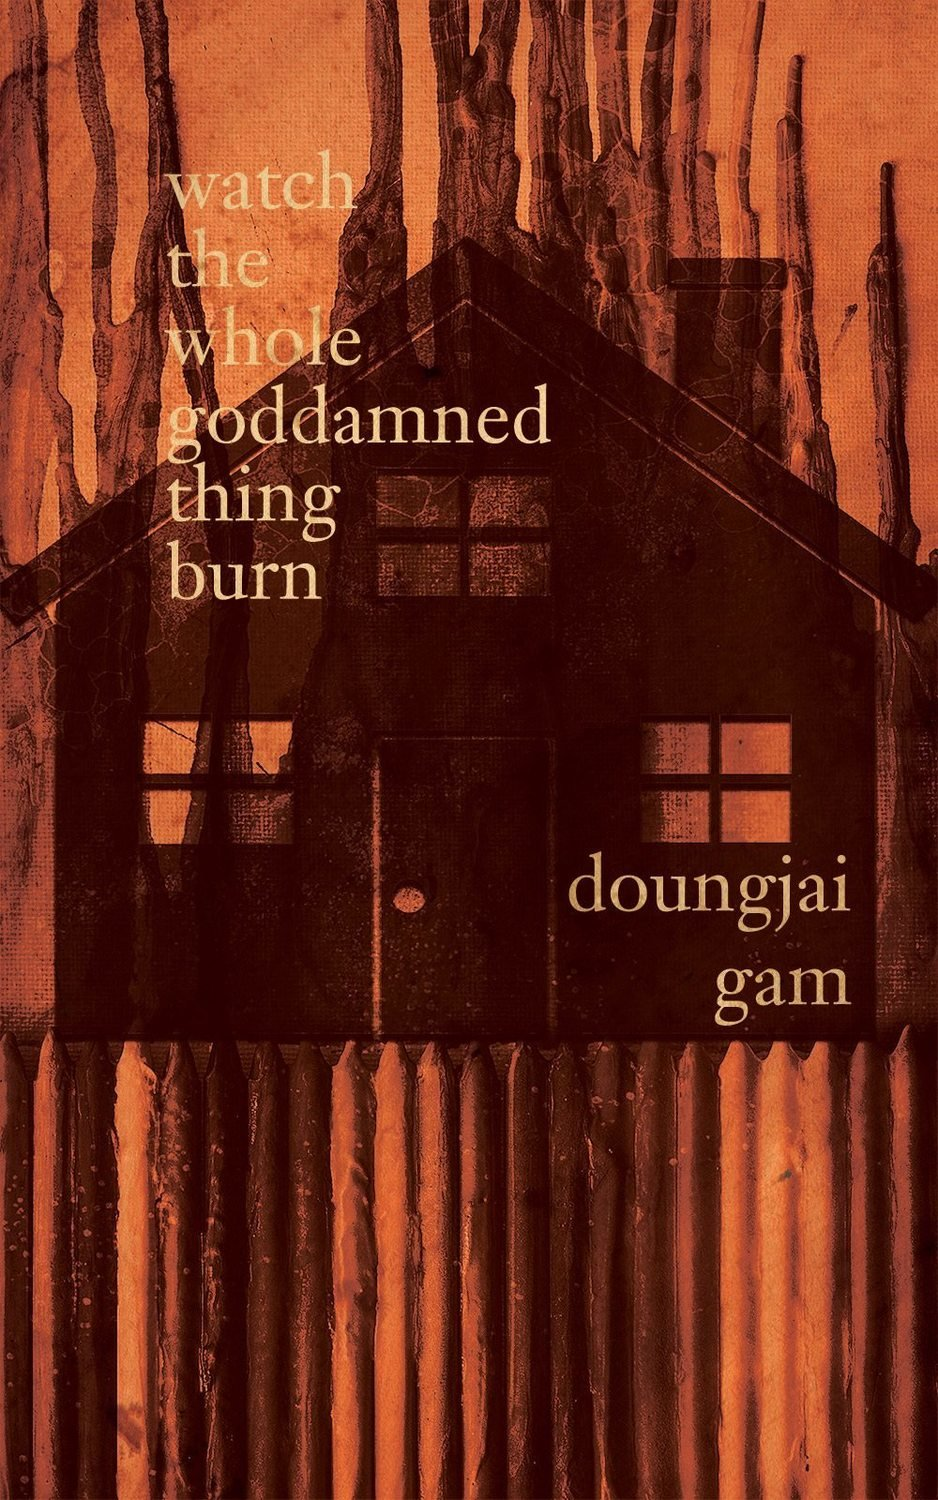 watch the whole goddamned thing burn by Doungjai Gam (Charitable Chapbook eBook edition pre-order)